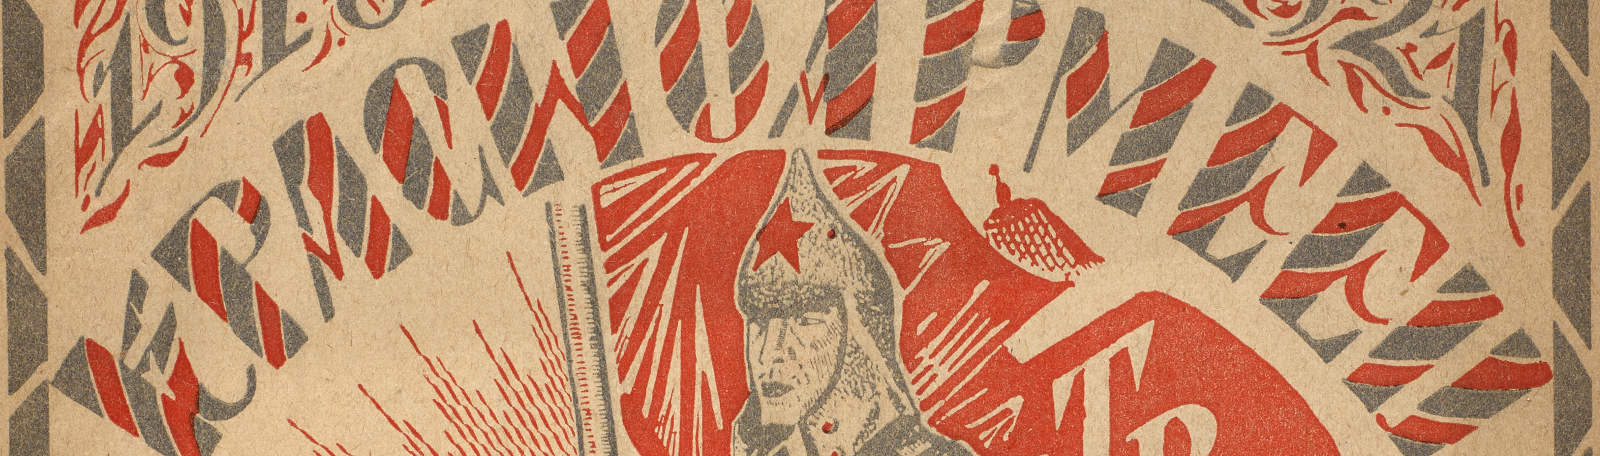 Reporting the Russian Revolution – The British Library - The British